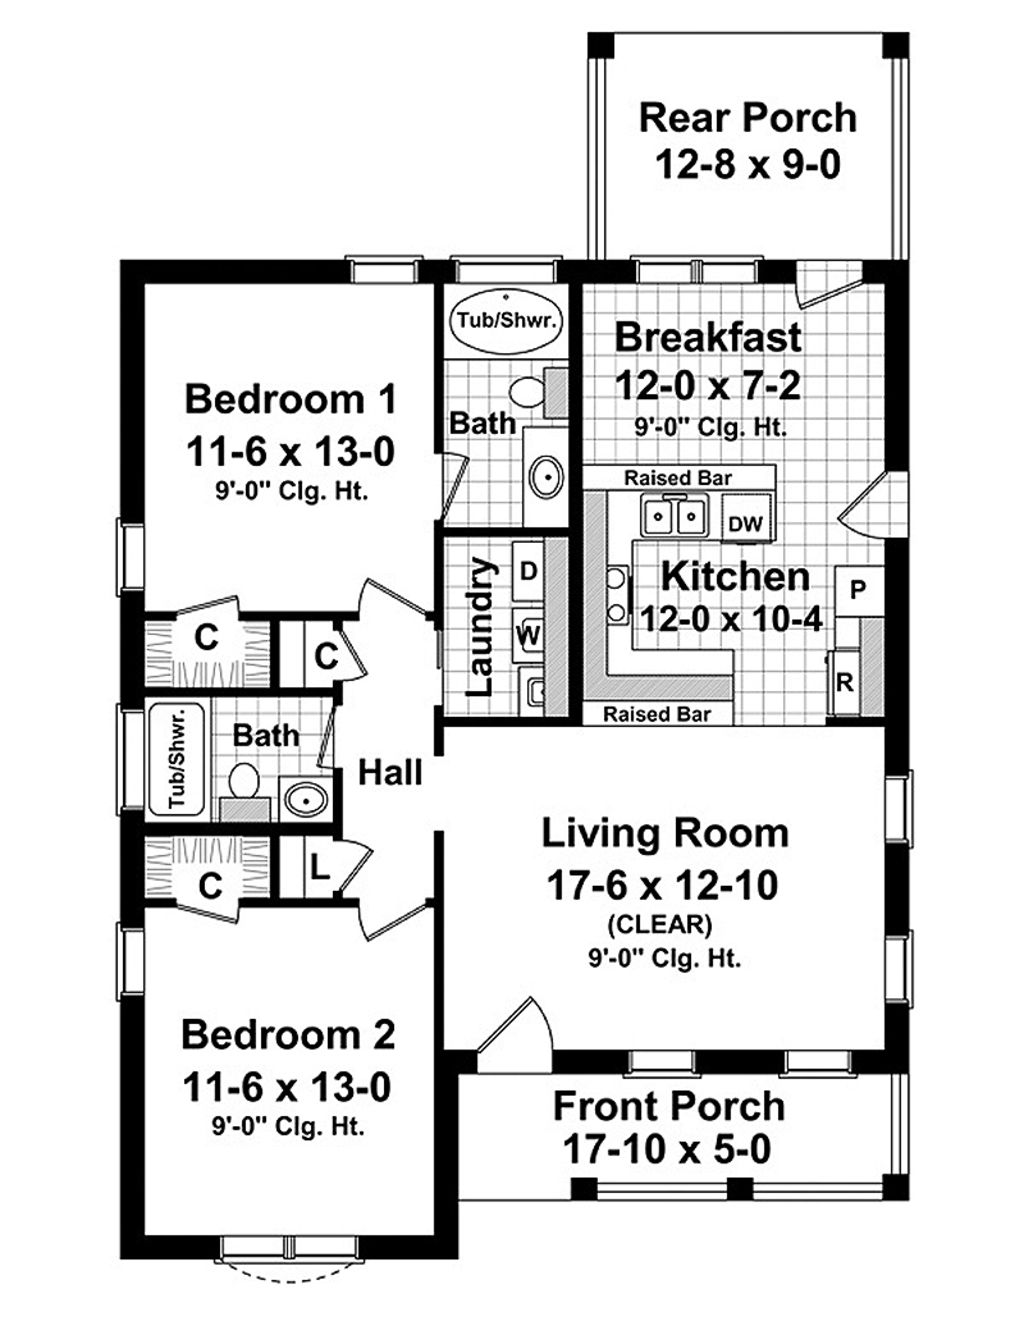 Cottage style house plan 2 beds baths 1100 sq ft for 10 feet by 10 feet bedroom